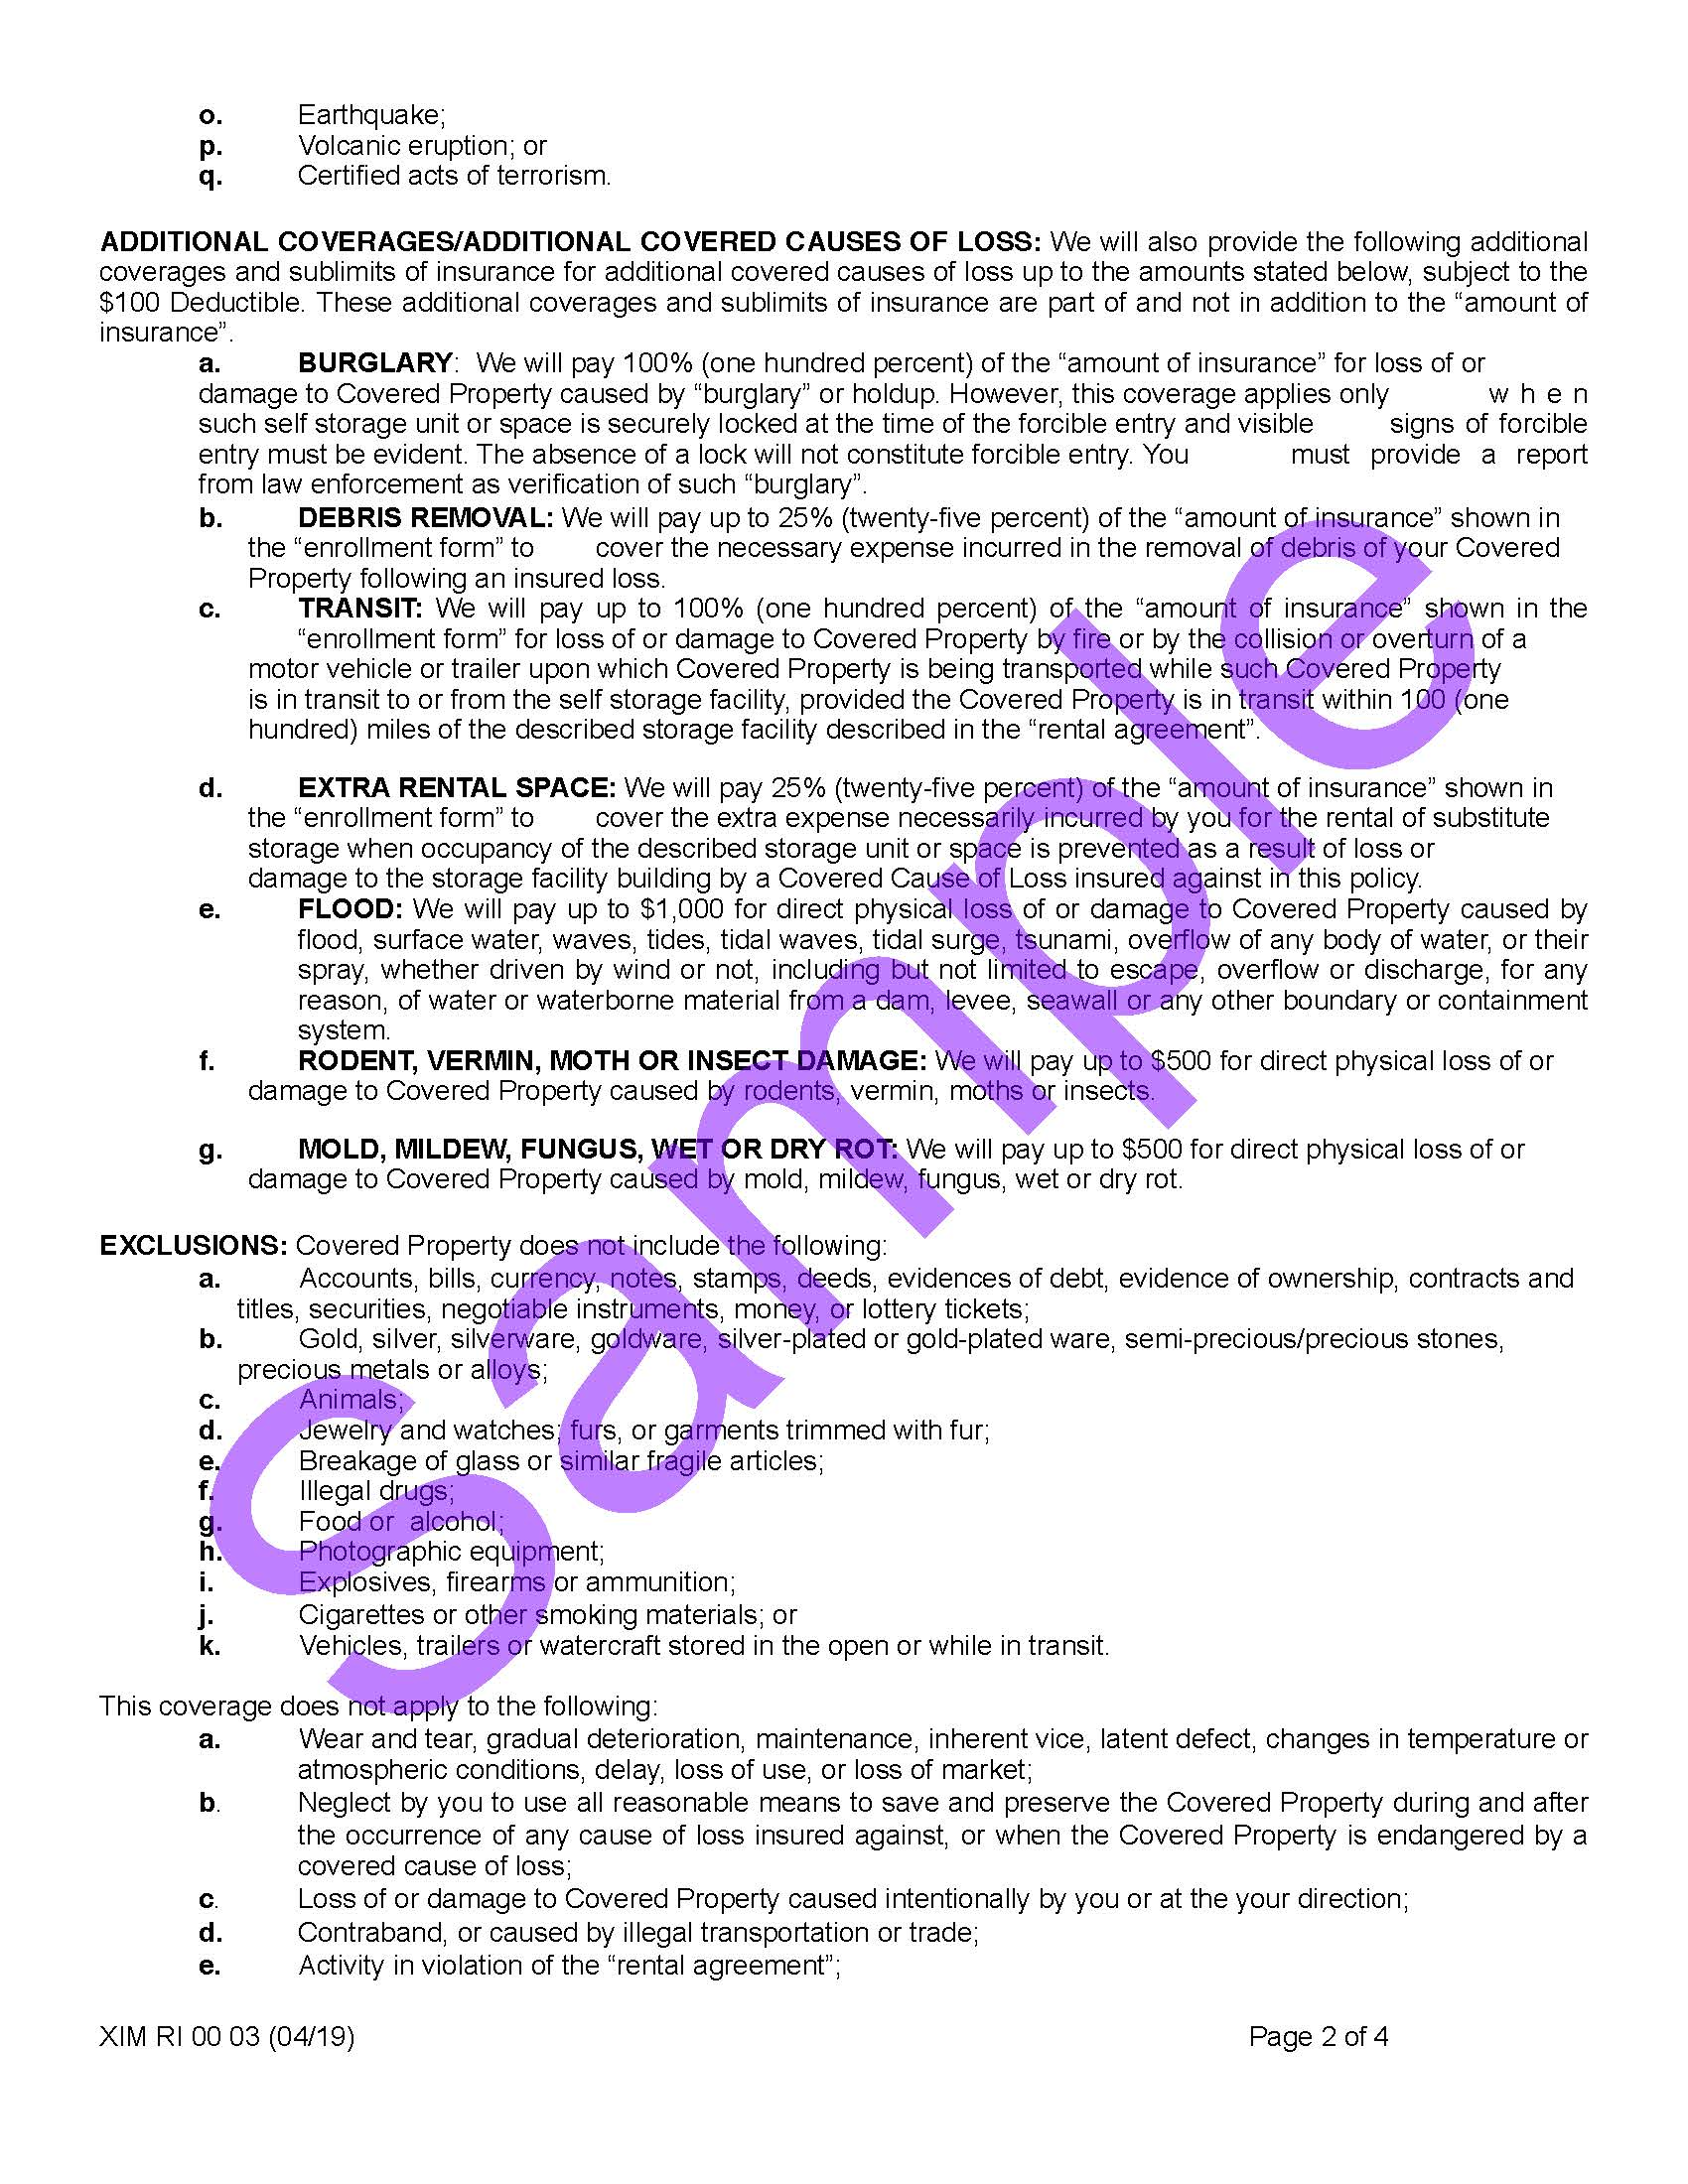 XIM RI 00 03 04 19 Rhode Island Certificate of InsuranceSample_Page_2.jpg